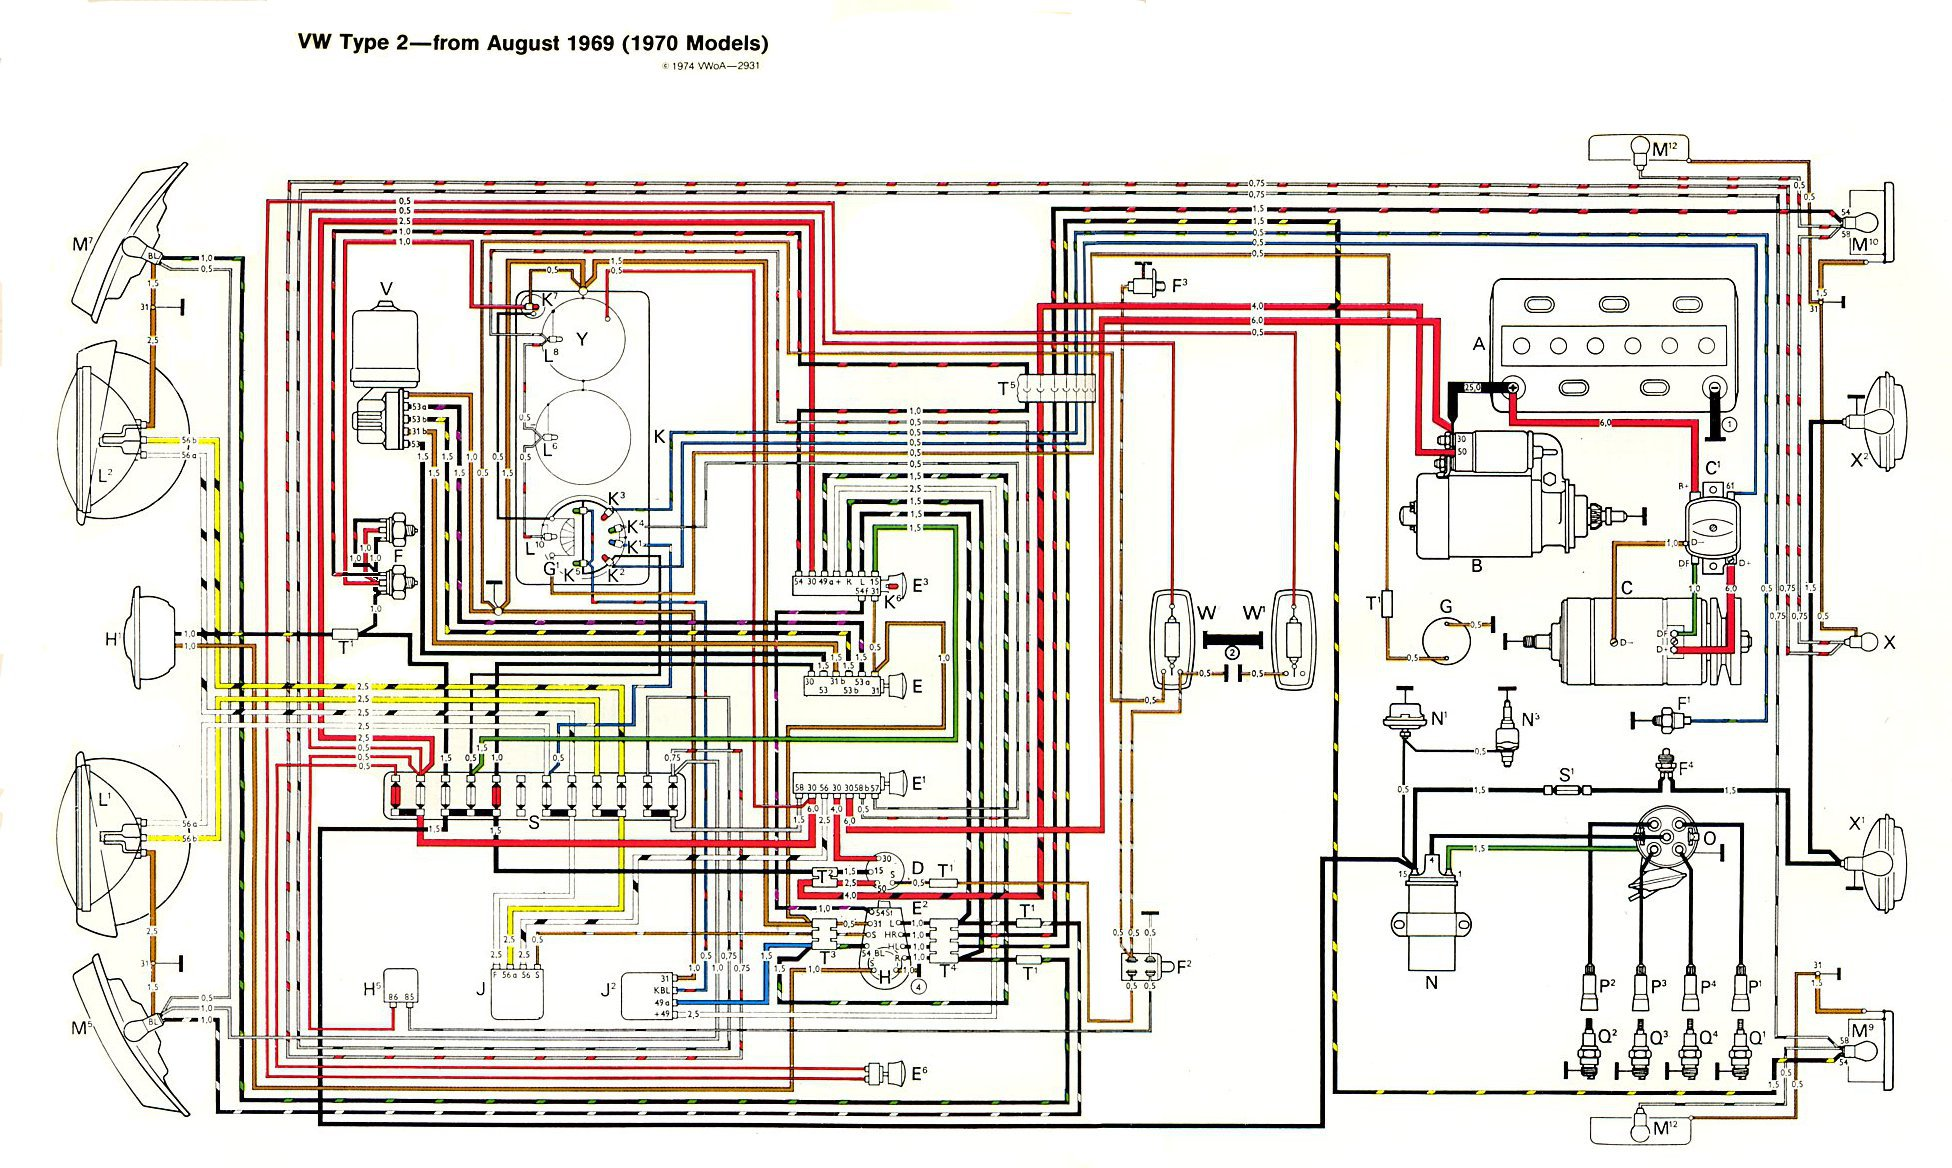 Type 2 Wiring Diagrams 1980 Chevy Wiper Motor